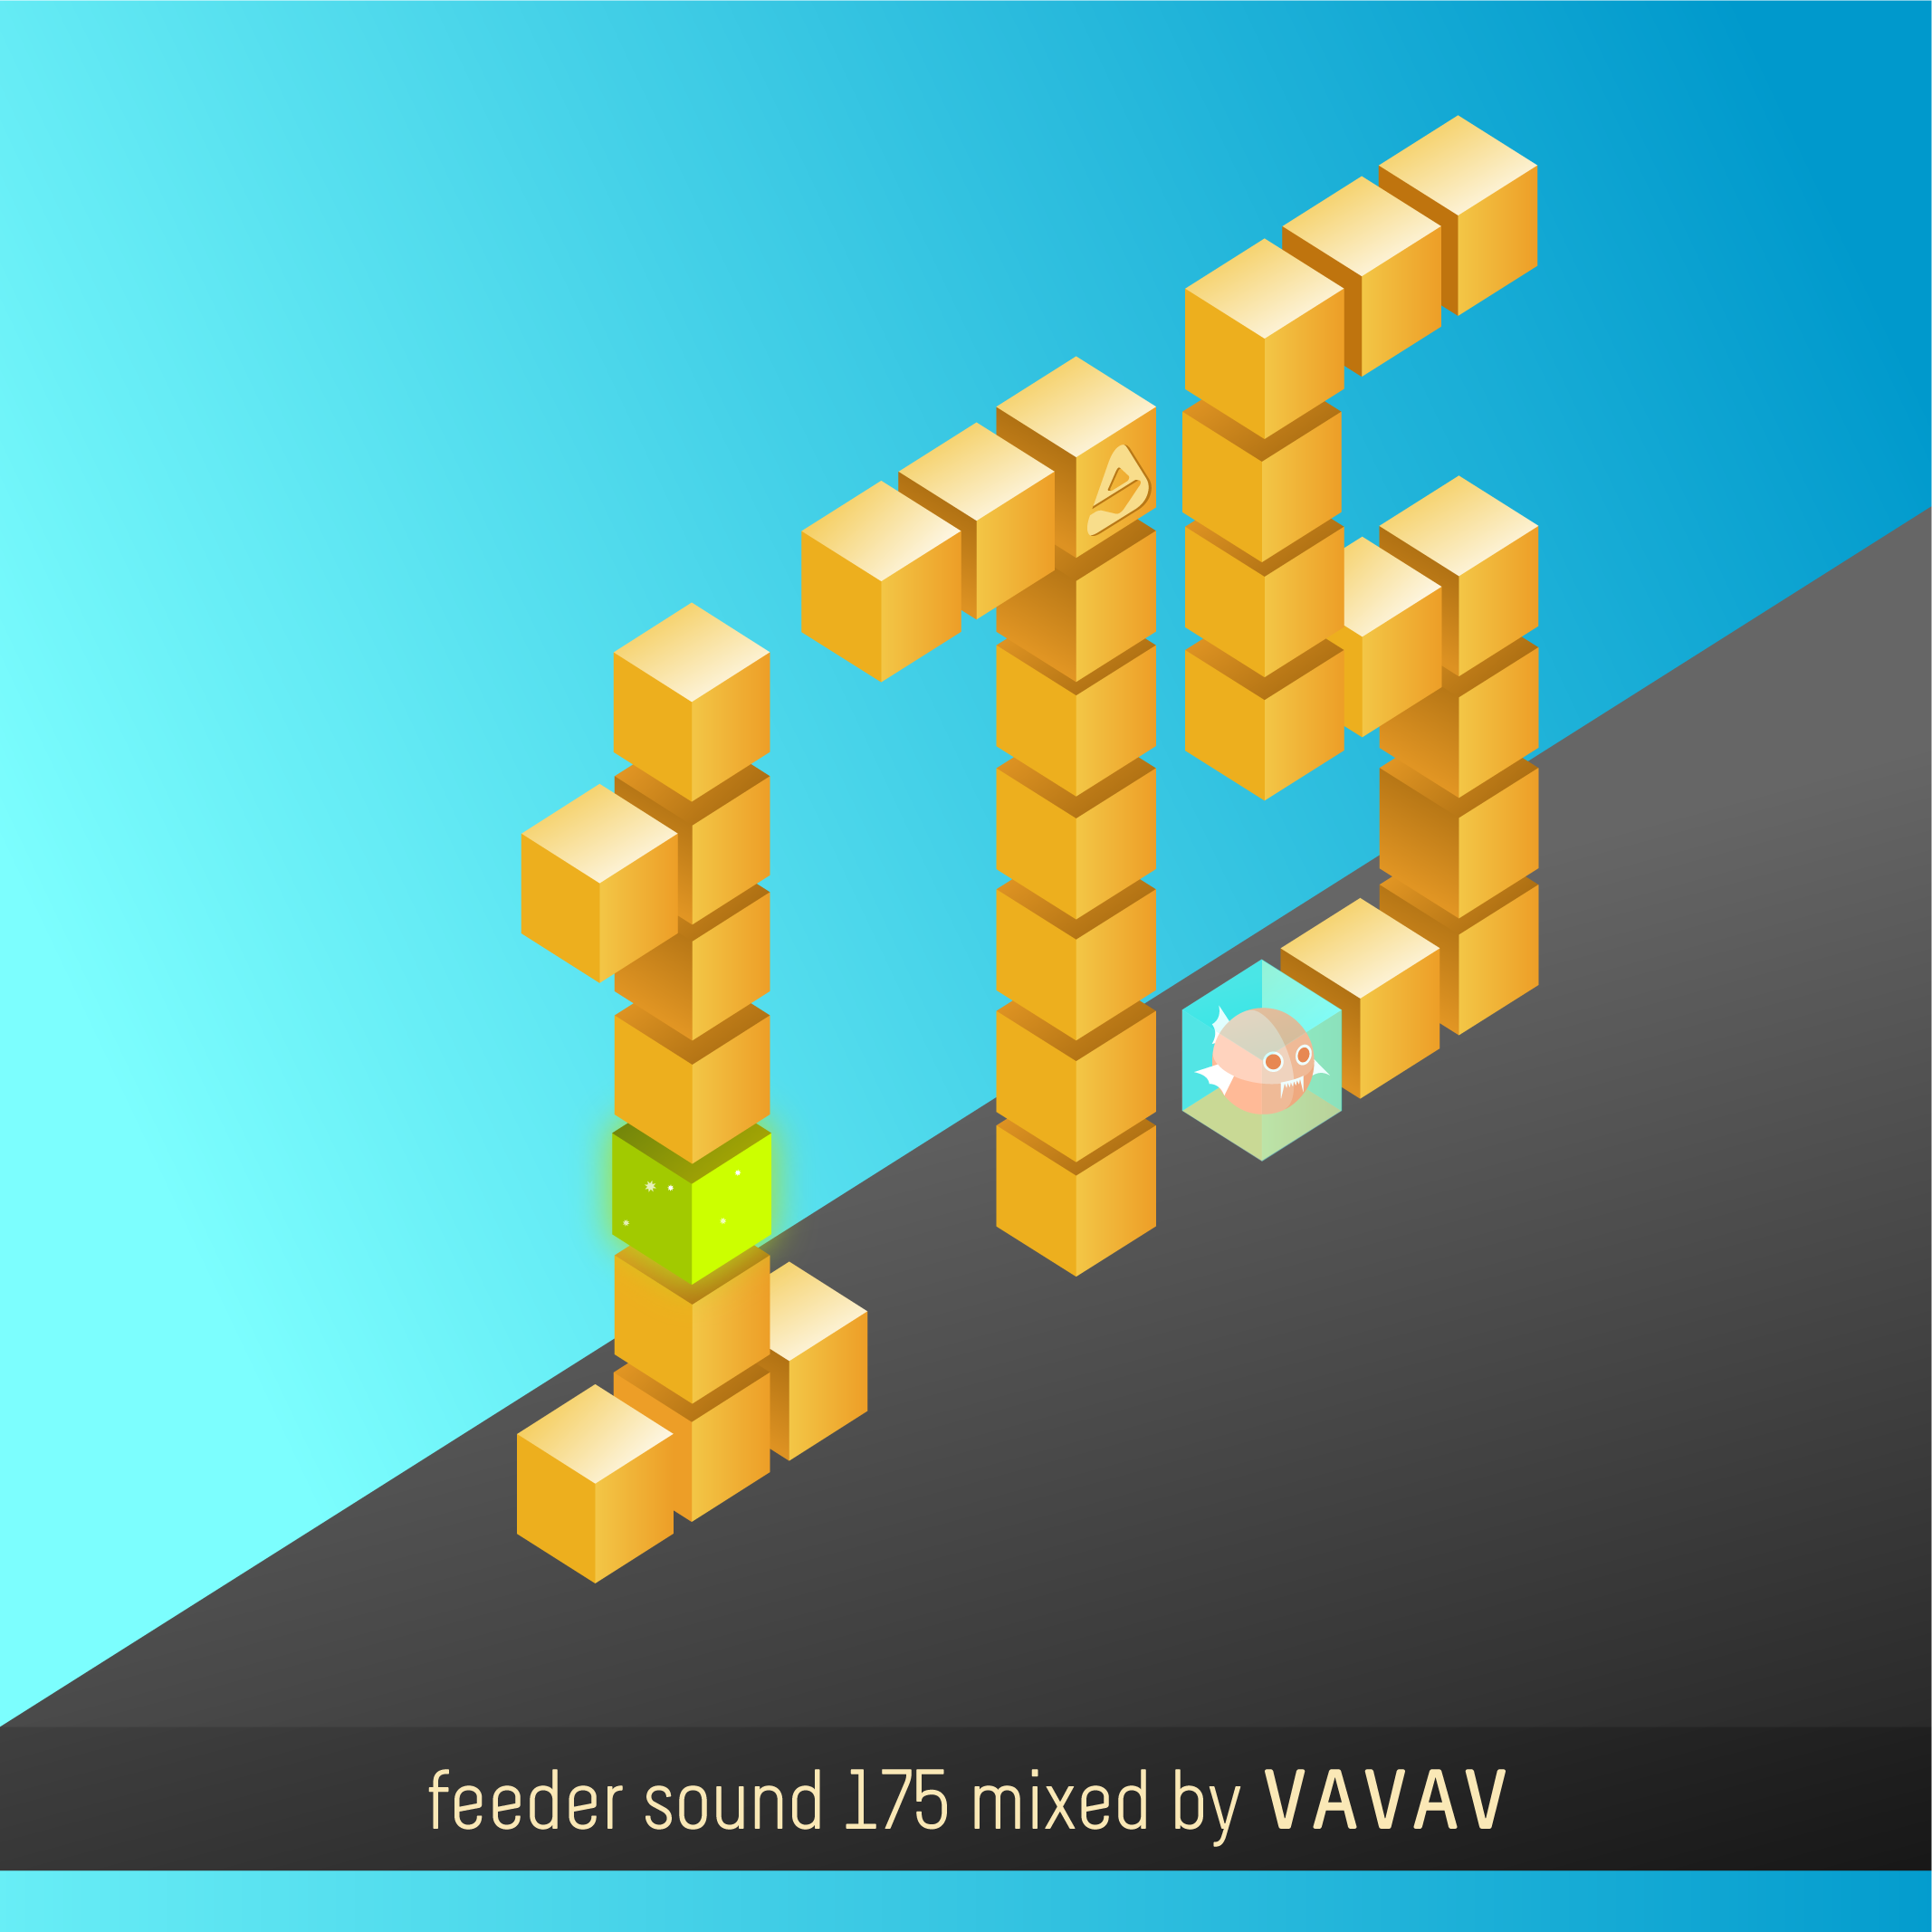 feeder sound 175 mixed by VAVAV